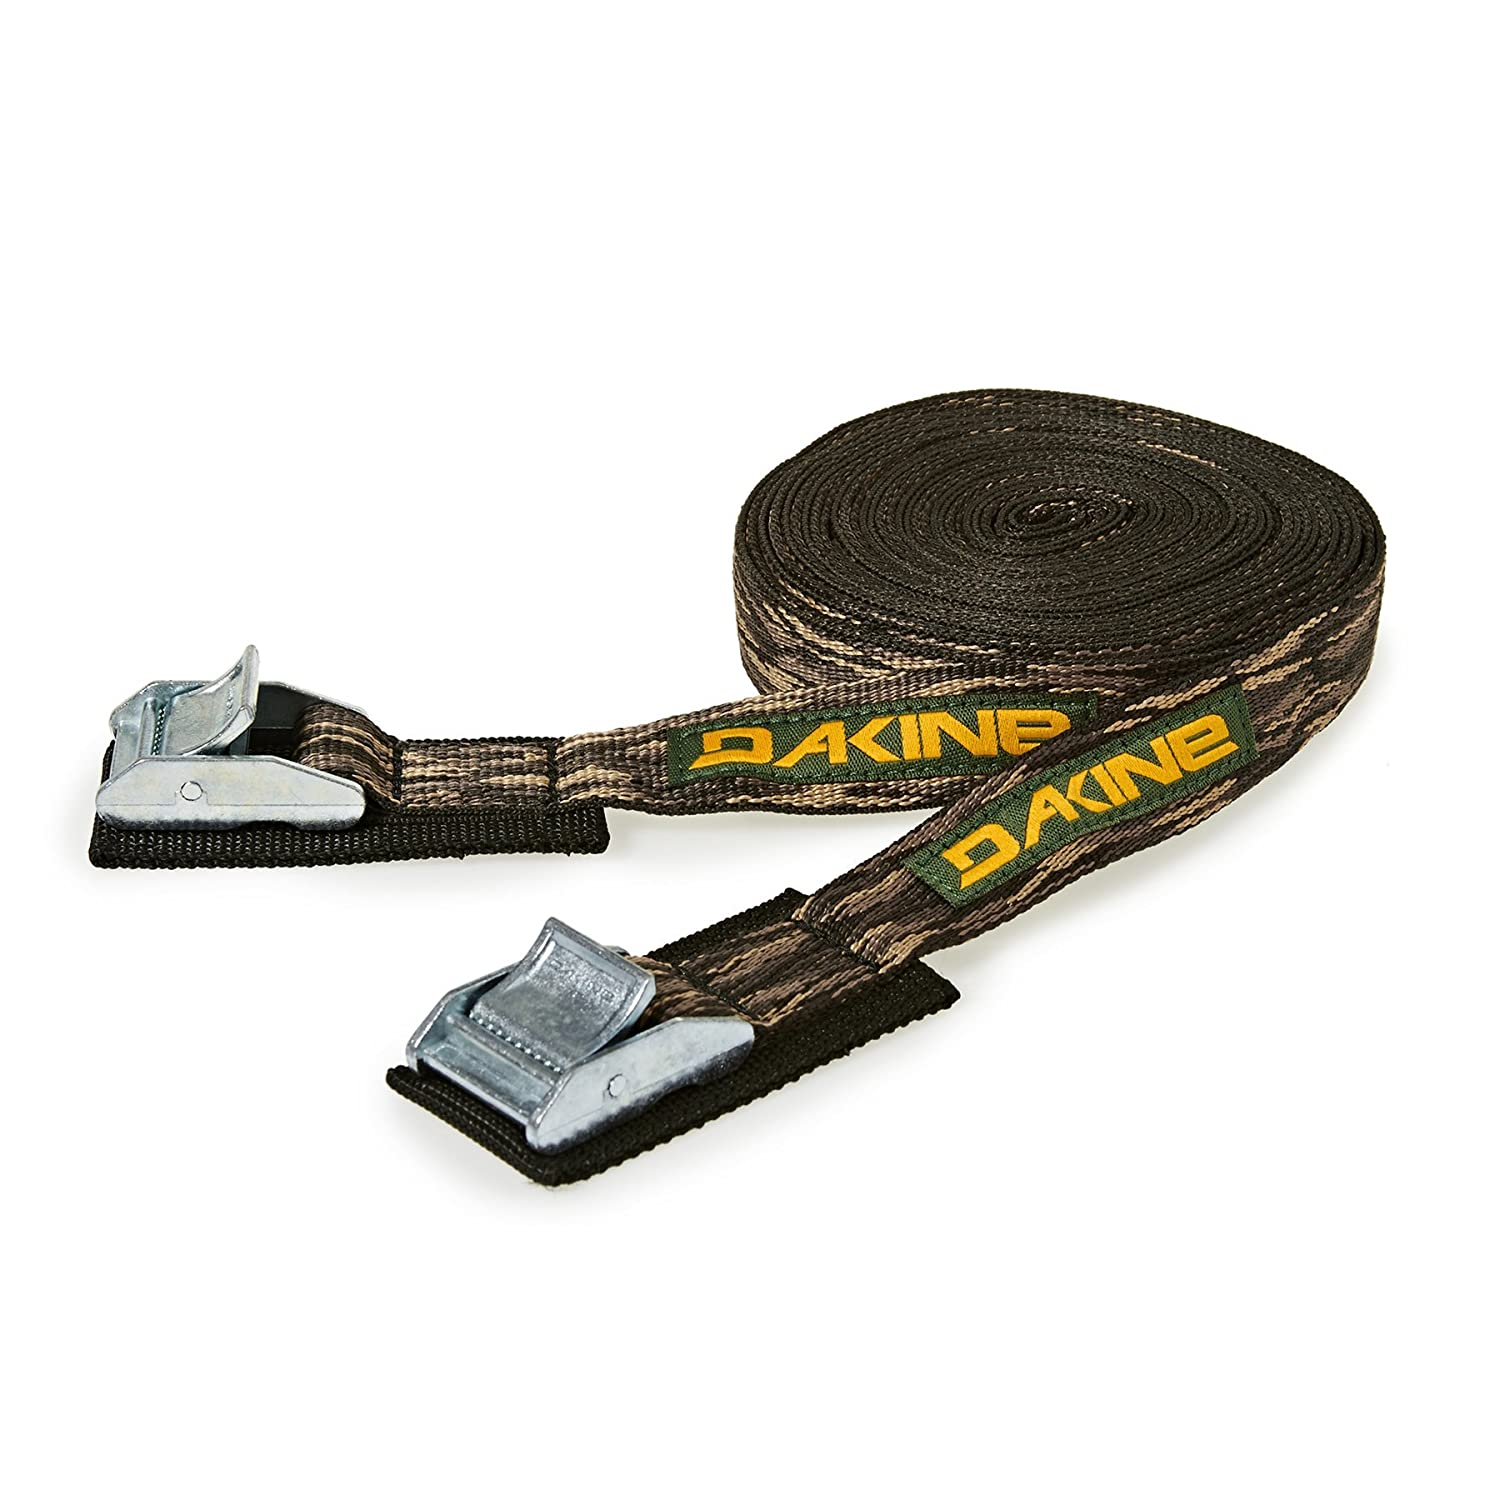 12ft Dakine Tie Down Straps